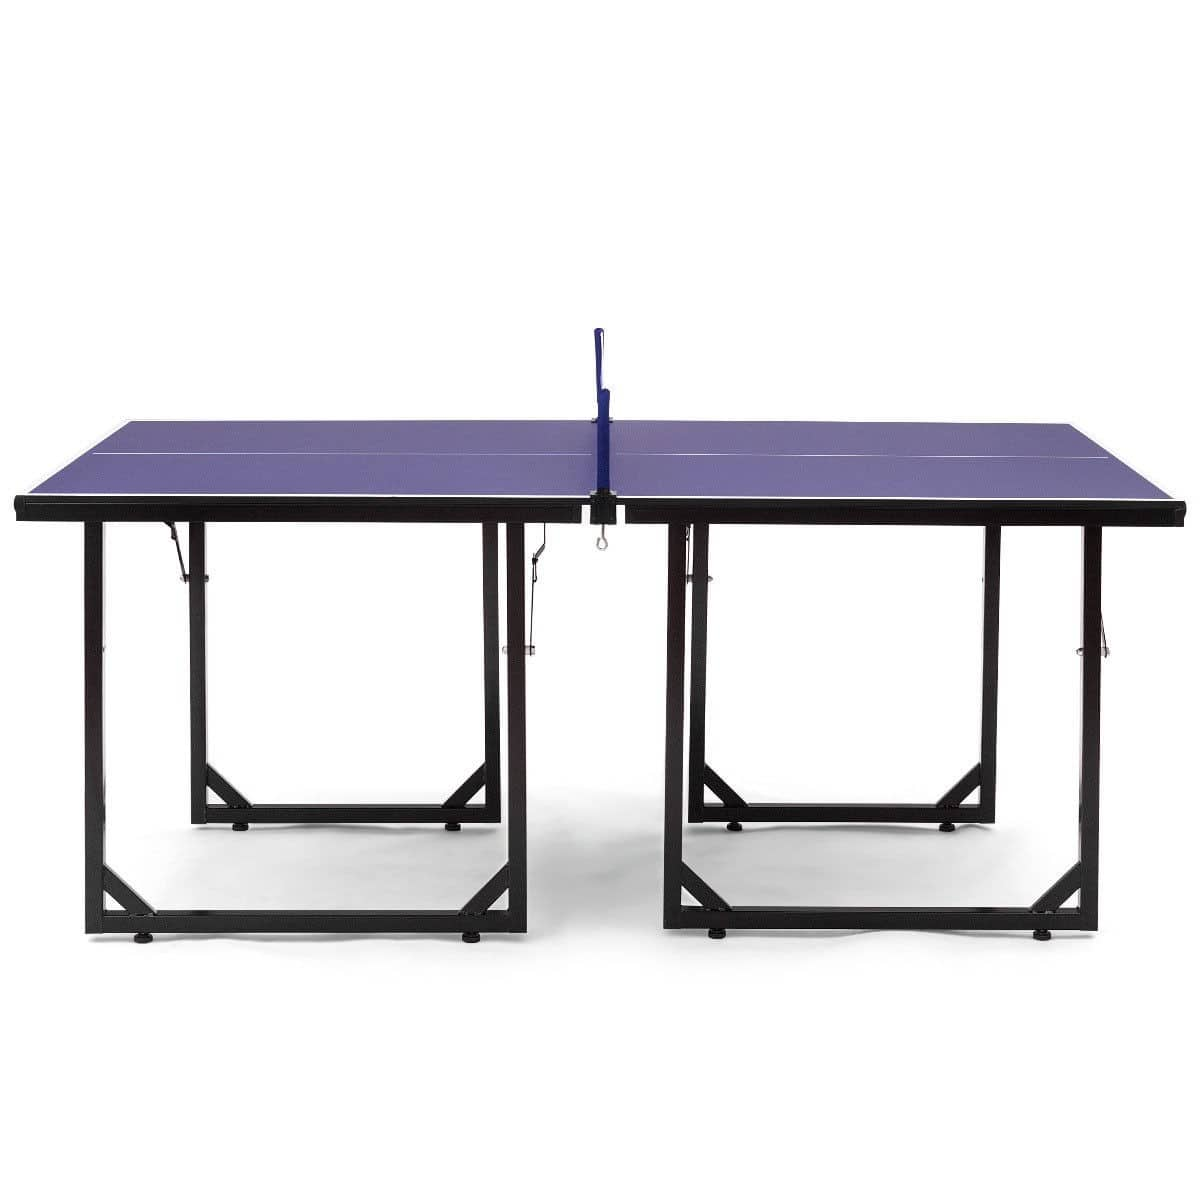 Multi-Use Foldable Midsize Removable Compact Ping-pong Table  - $125.95 + Free Shipping